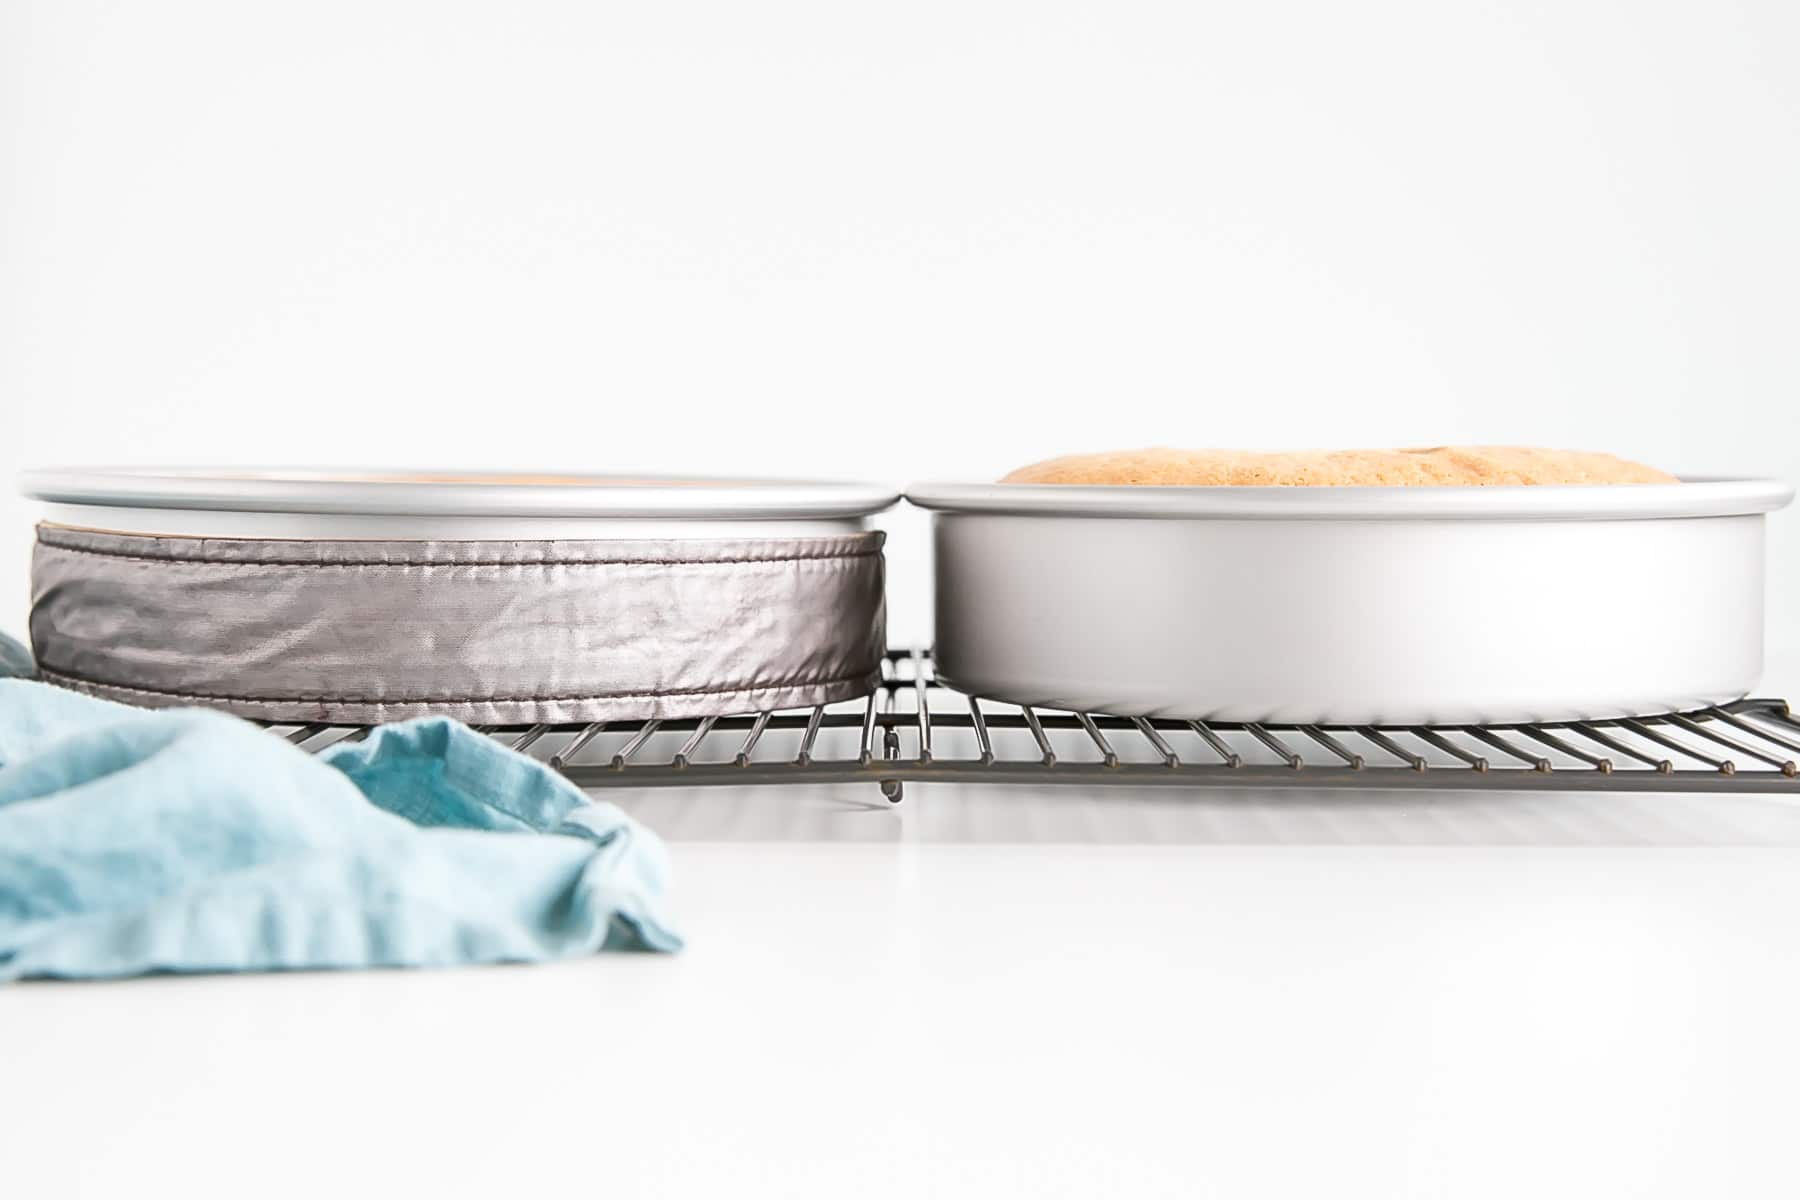 Tow cake pans side by side, one with an evenbake strip on it.